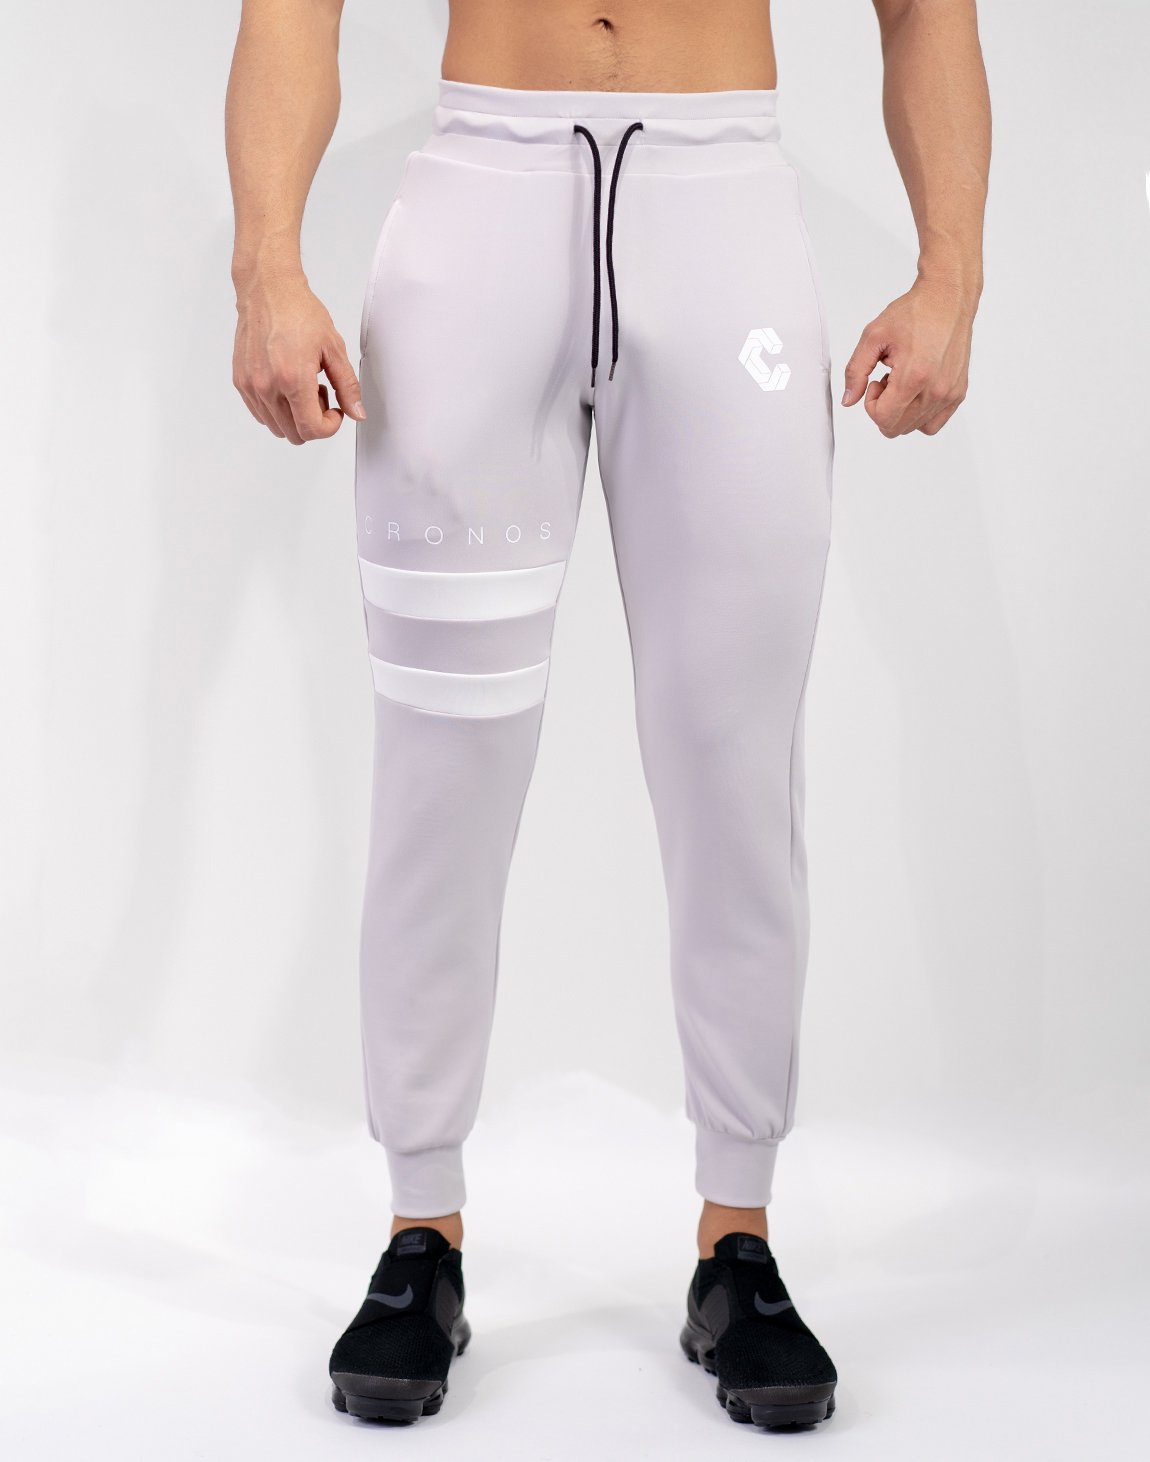 <img class='new_mark_img1' src='https://img.shop-pro.jp/img/new/icons1.gif' style='border:none;display:inline;margin:0px;padding:0px;width:auto;' />Mode Tow Line Jogger Pants Gray